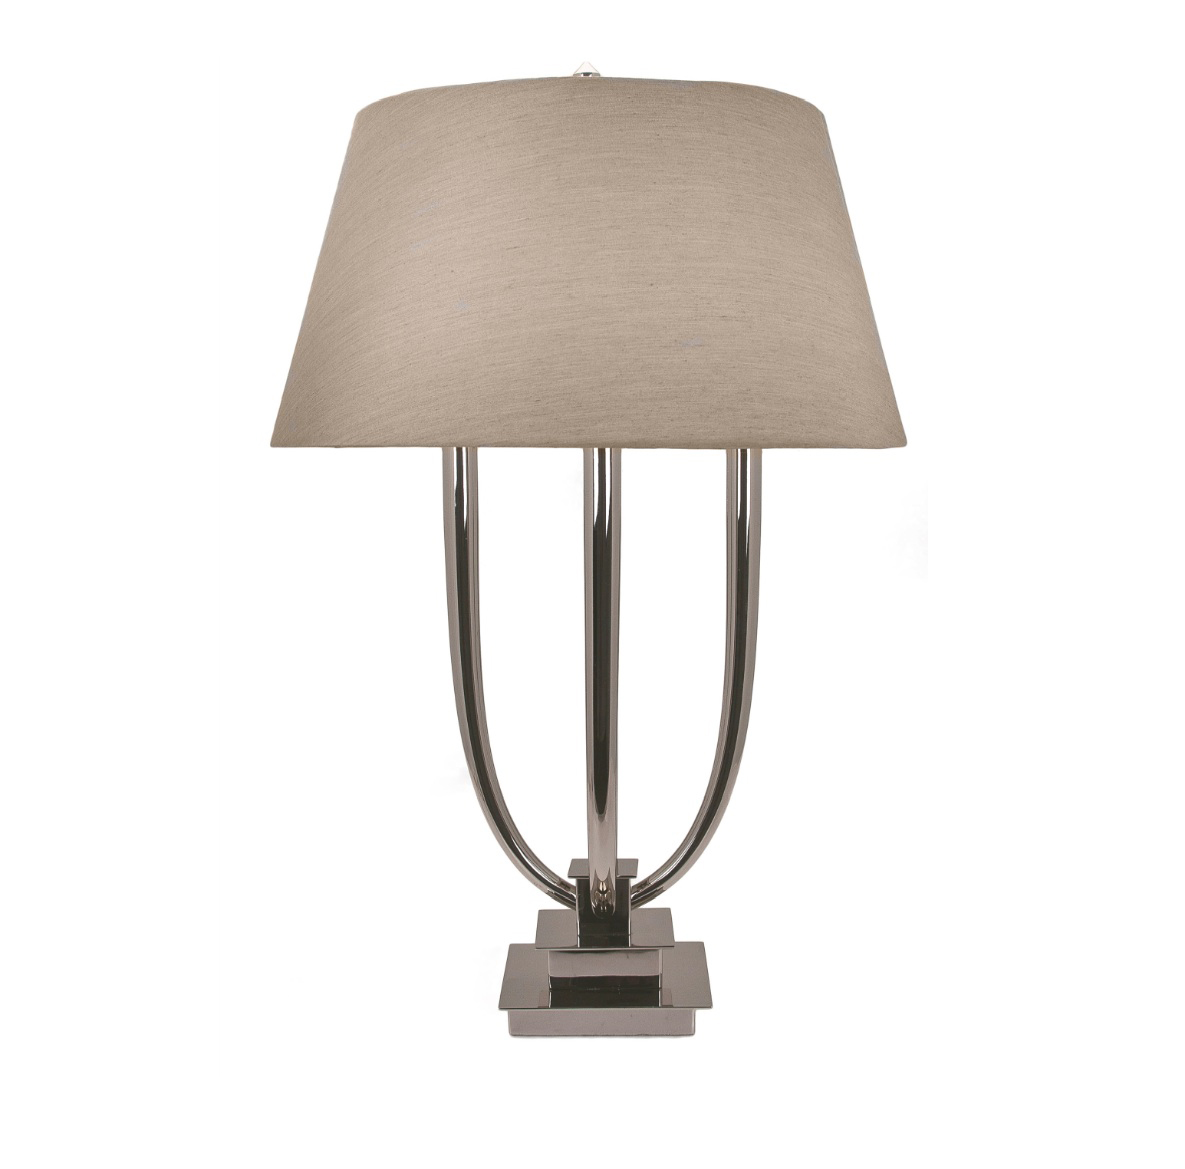 AMALFI NICKEL TABLE LAMP WITH SHADE-0